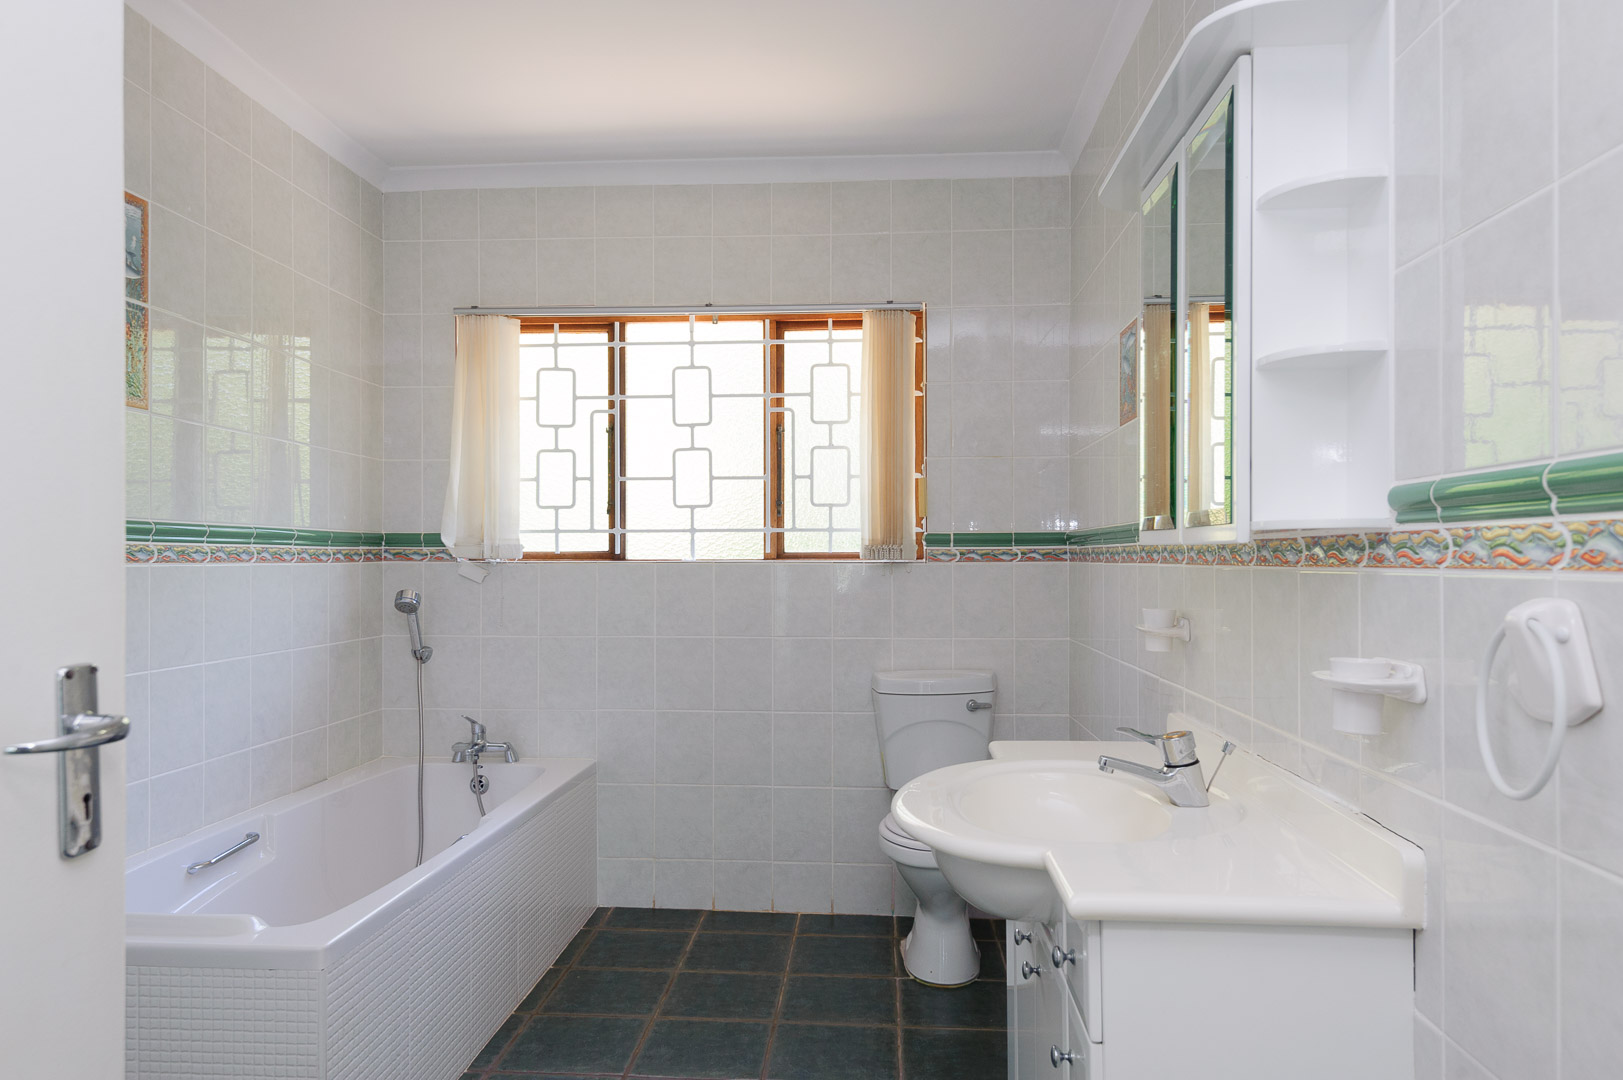 3 Bedroom Townhouse for sale in Ballito ENT0080433 : photo#4